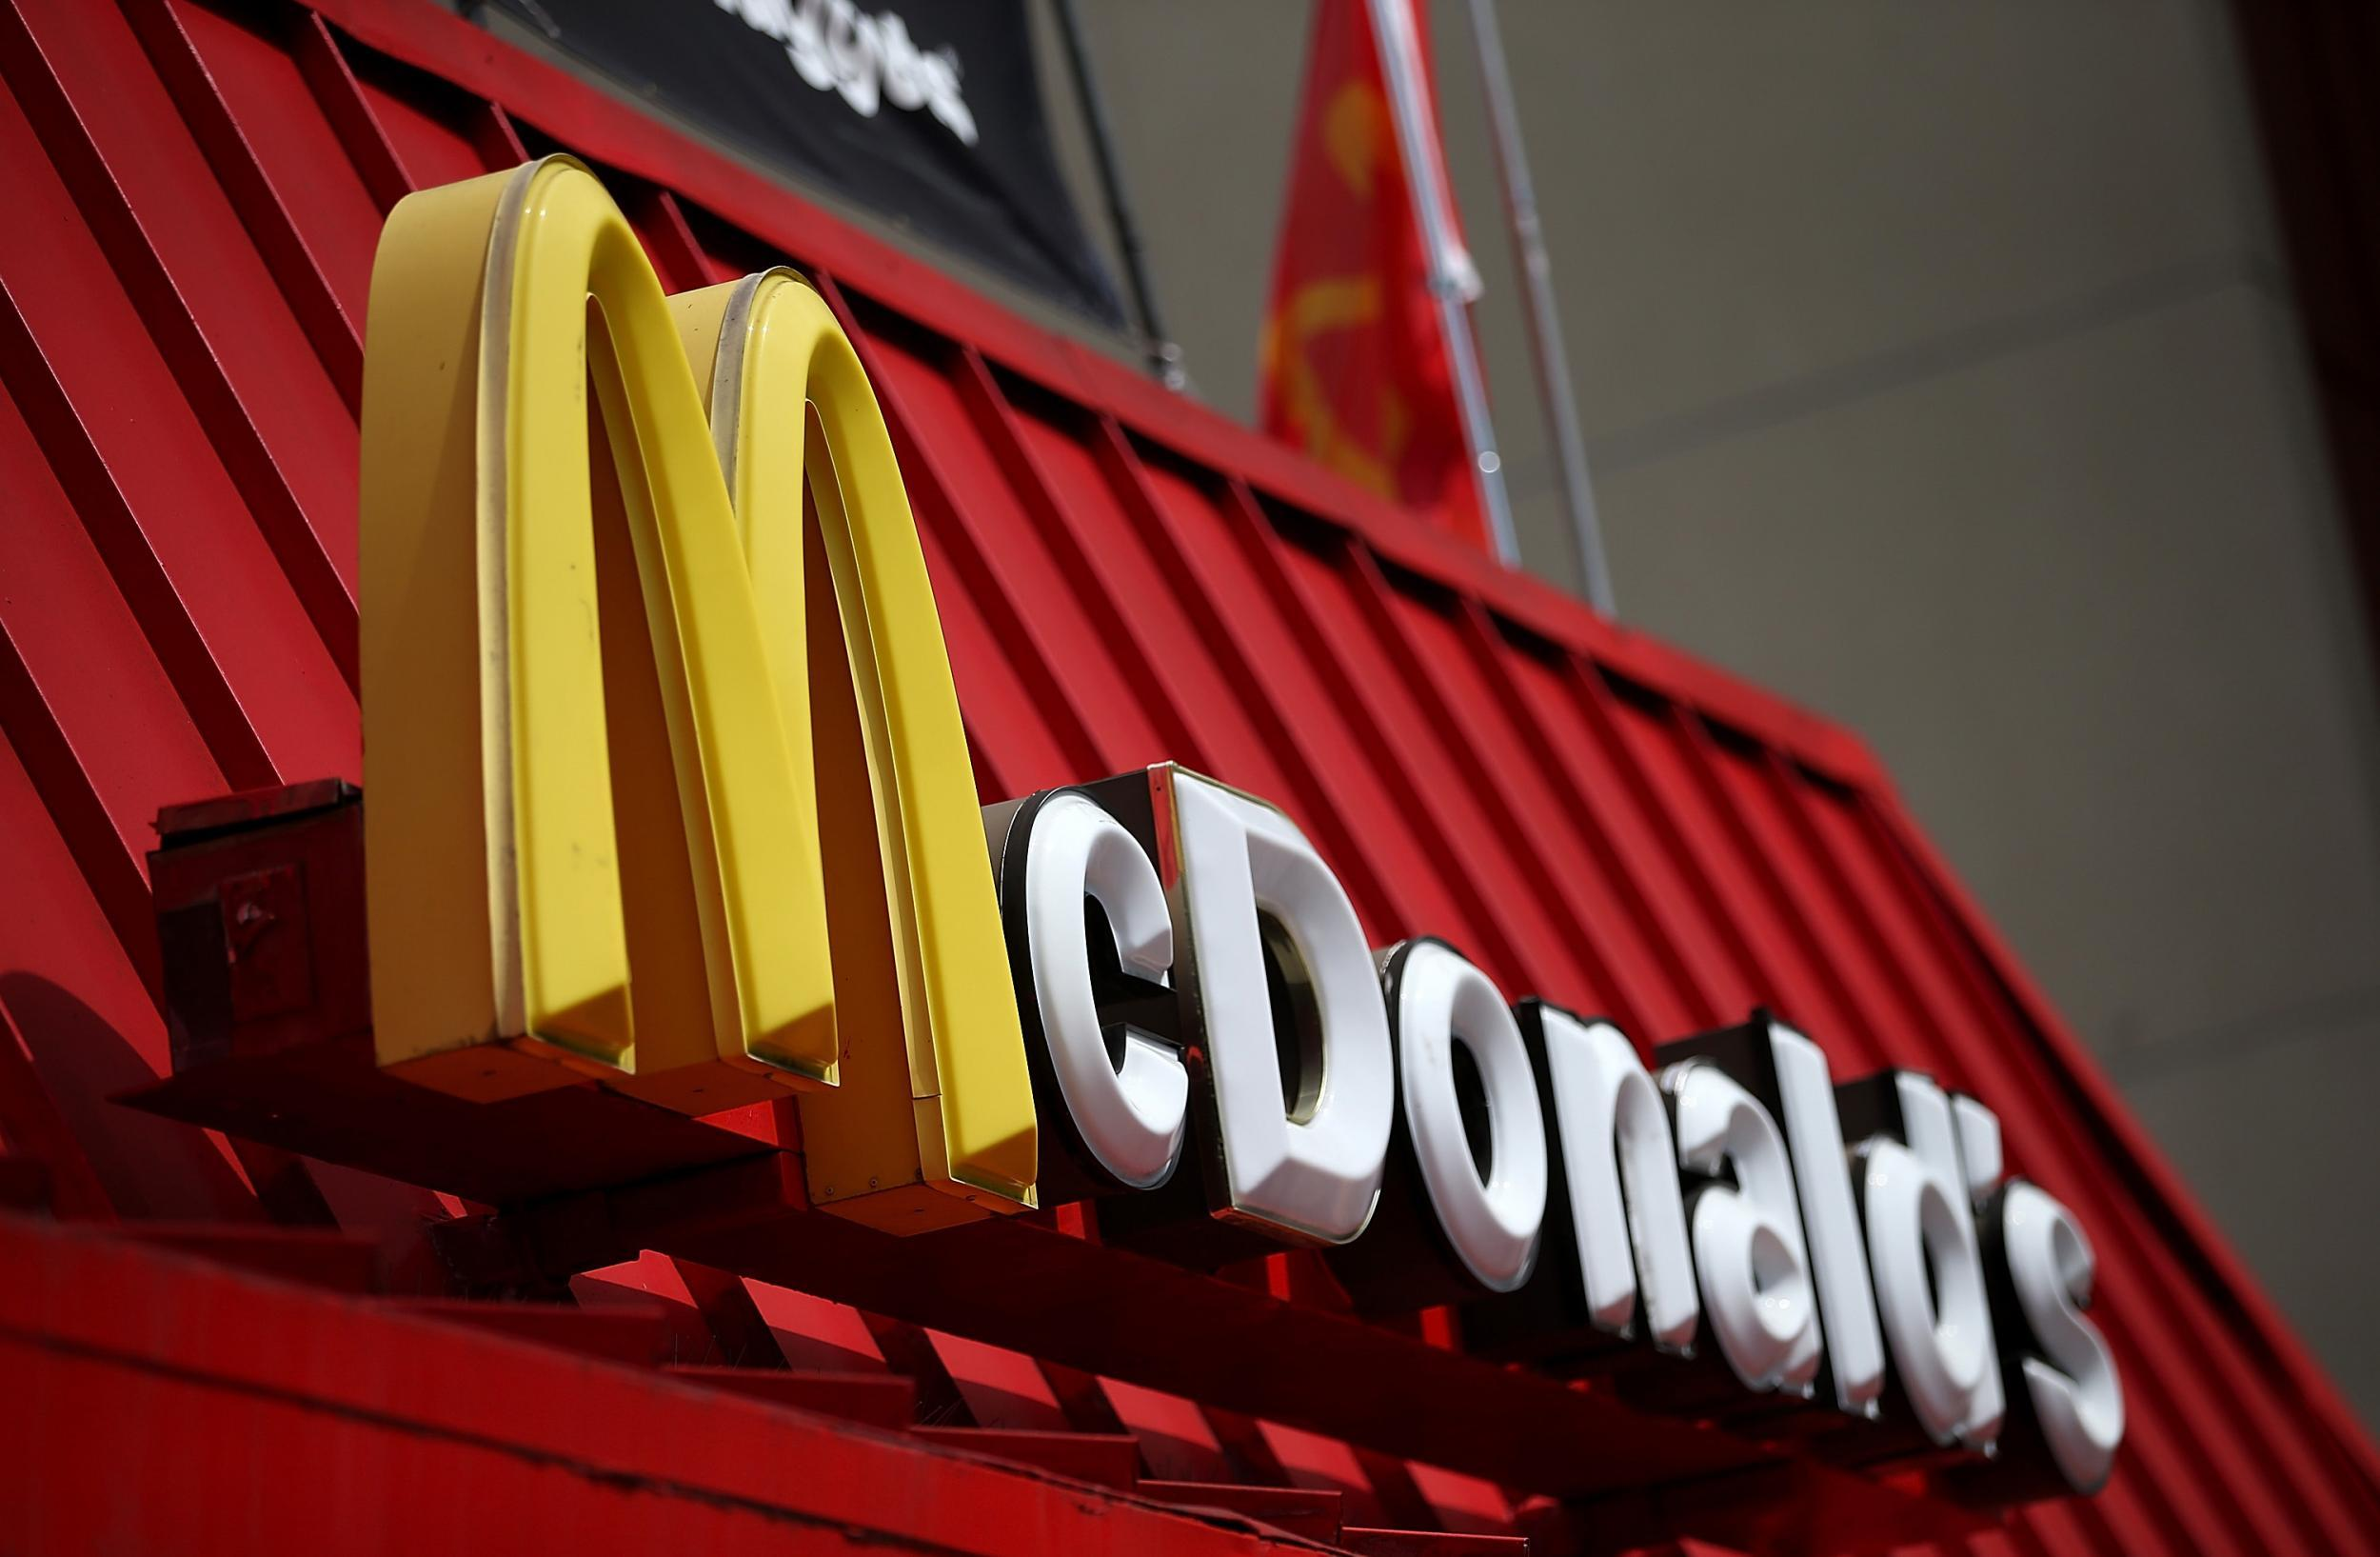 Mcdonalds Heist Thwarted By Table Full Of Elite Soldiers